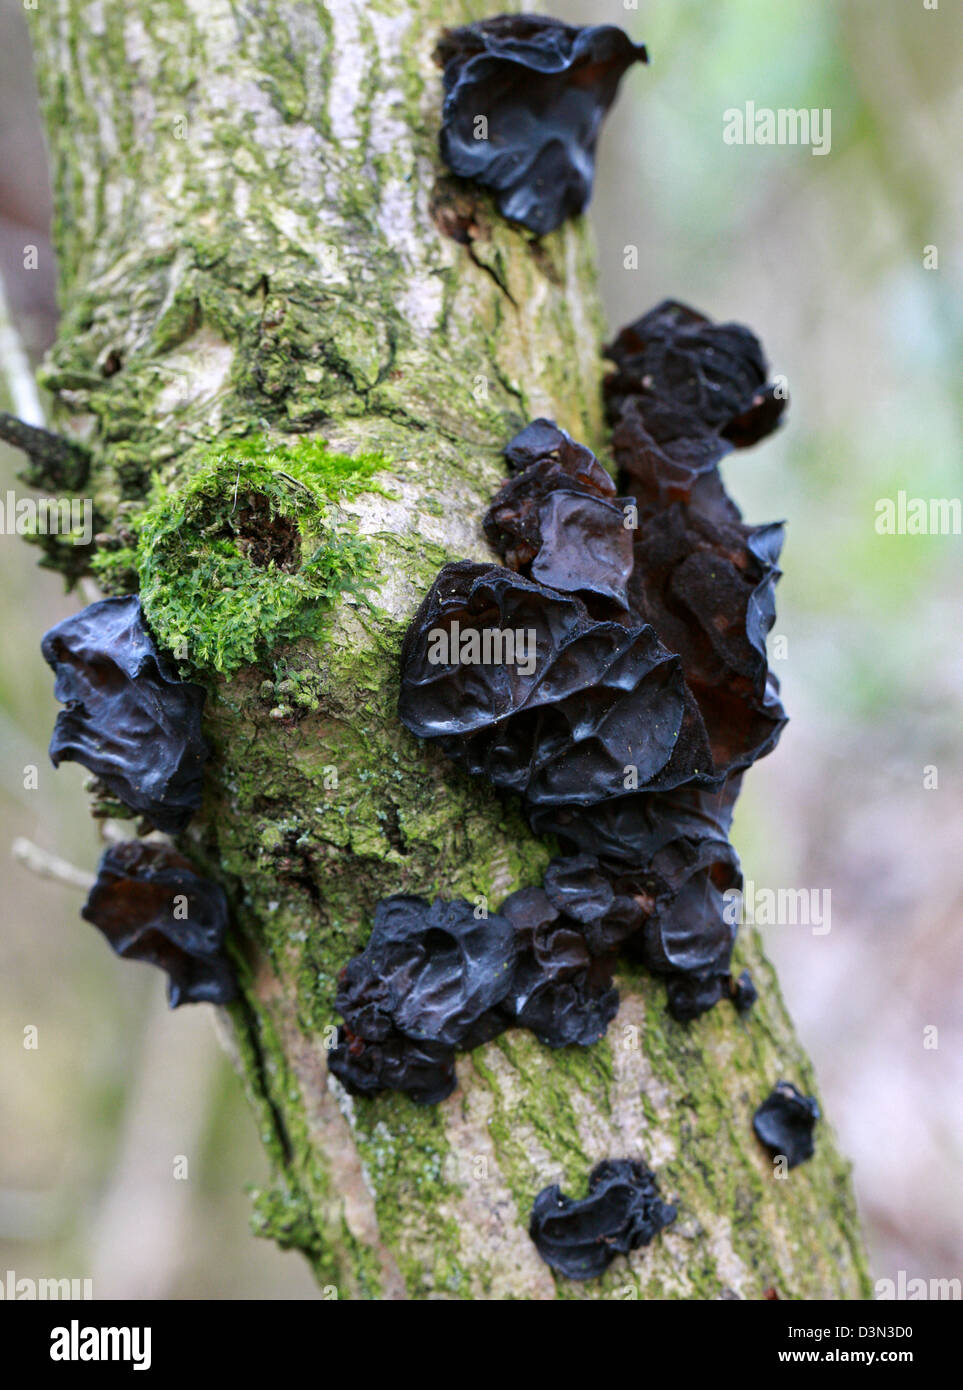 Witches' Butter, Exidia glandulosa, Auriculariaceae.  A Common Black Fungus Growing on a Dead Elder Branch. - Stock Image